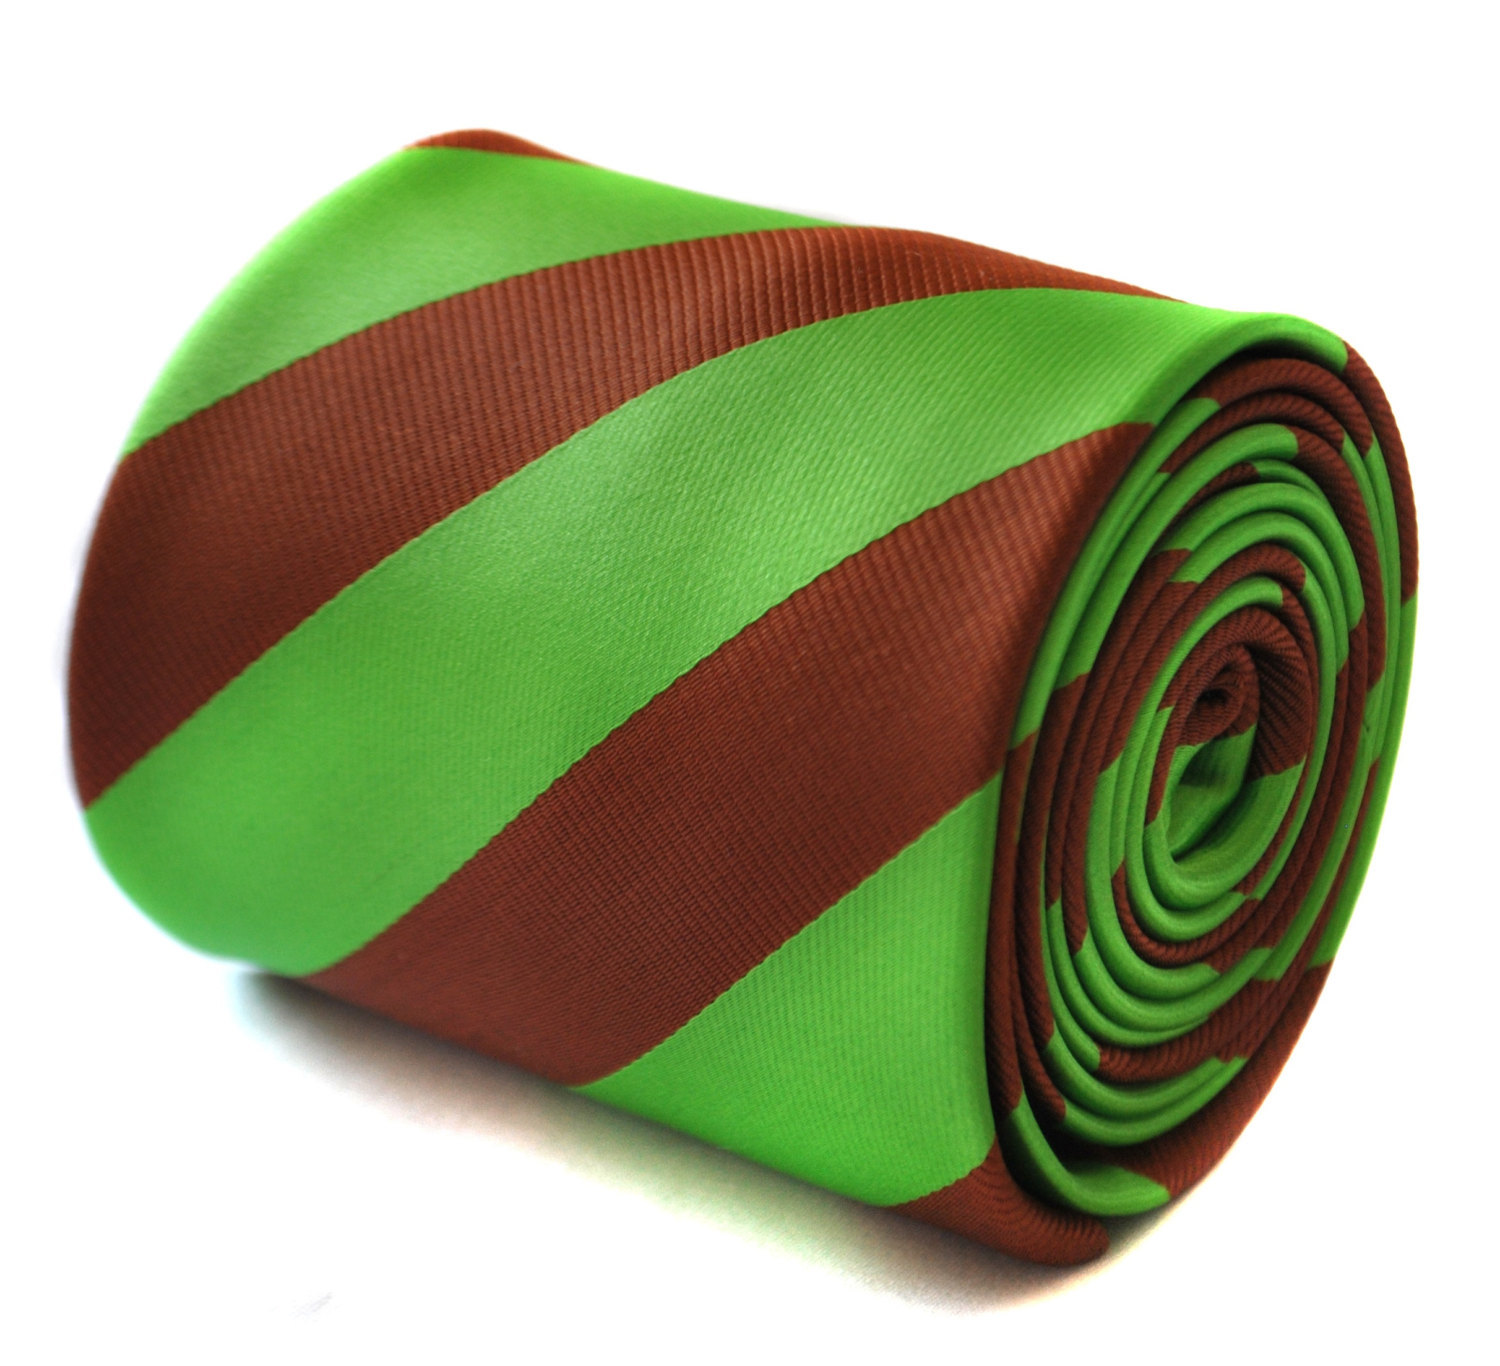 chocolate brown and bright apple green barber striped tie with floral design to